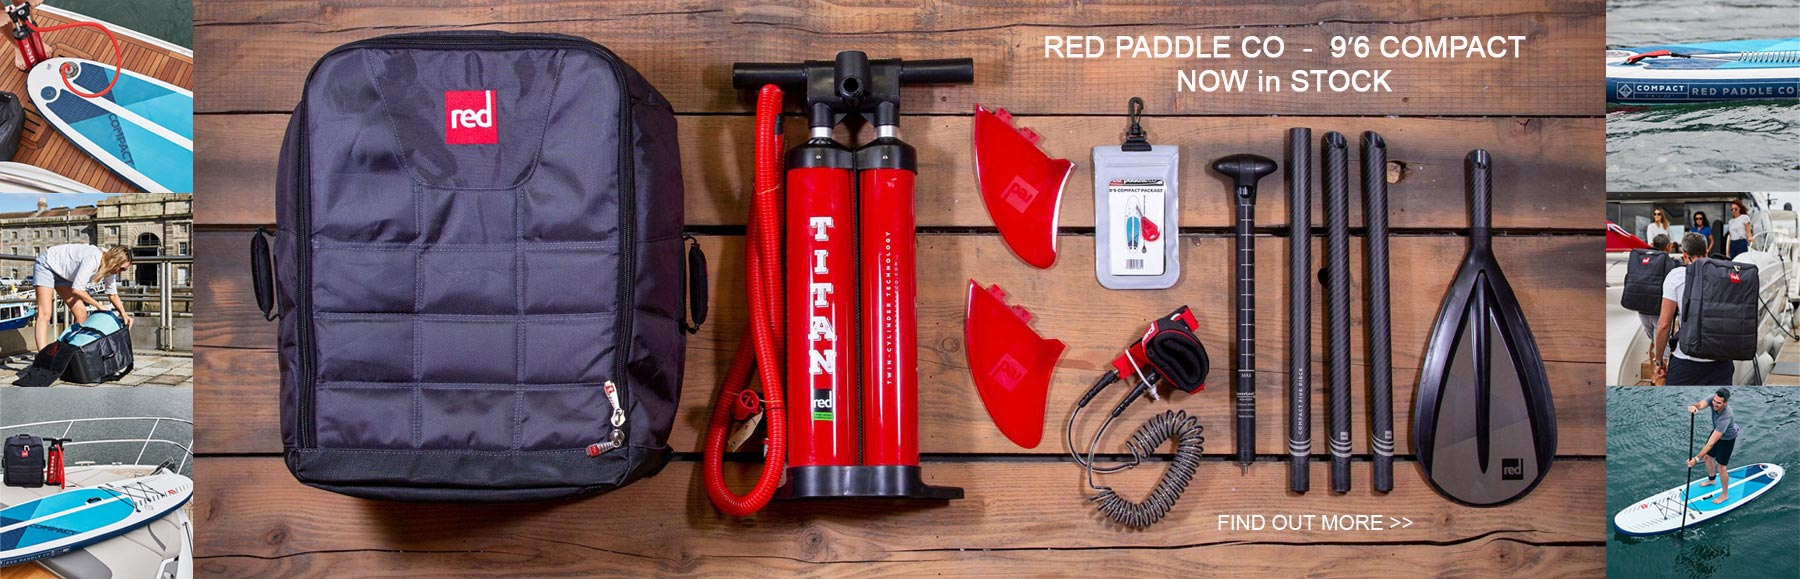 Red Paddle Co Compact Paddleboard